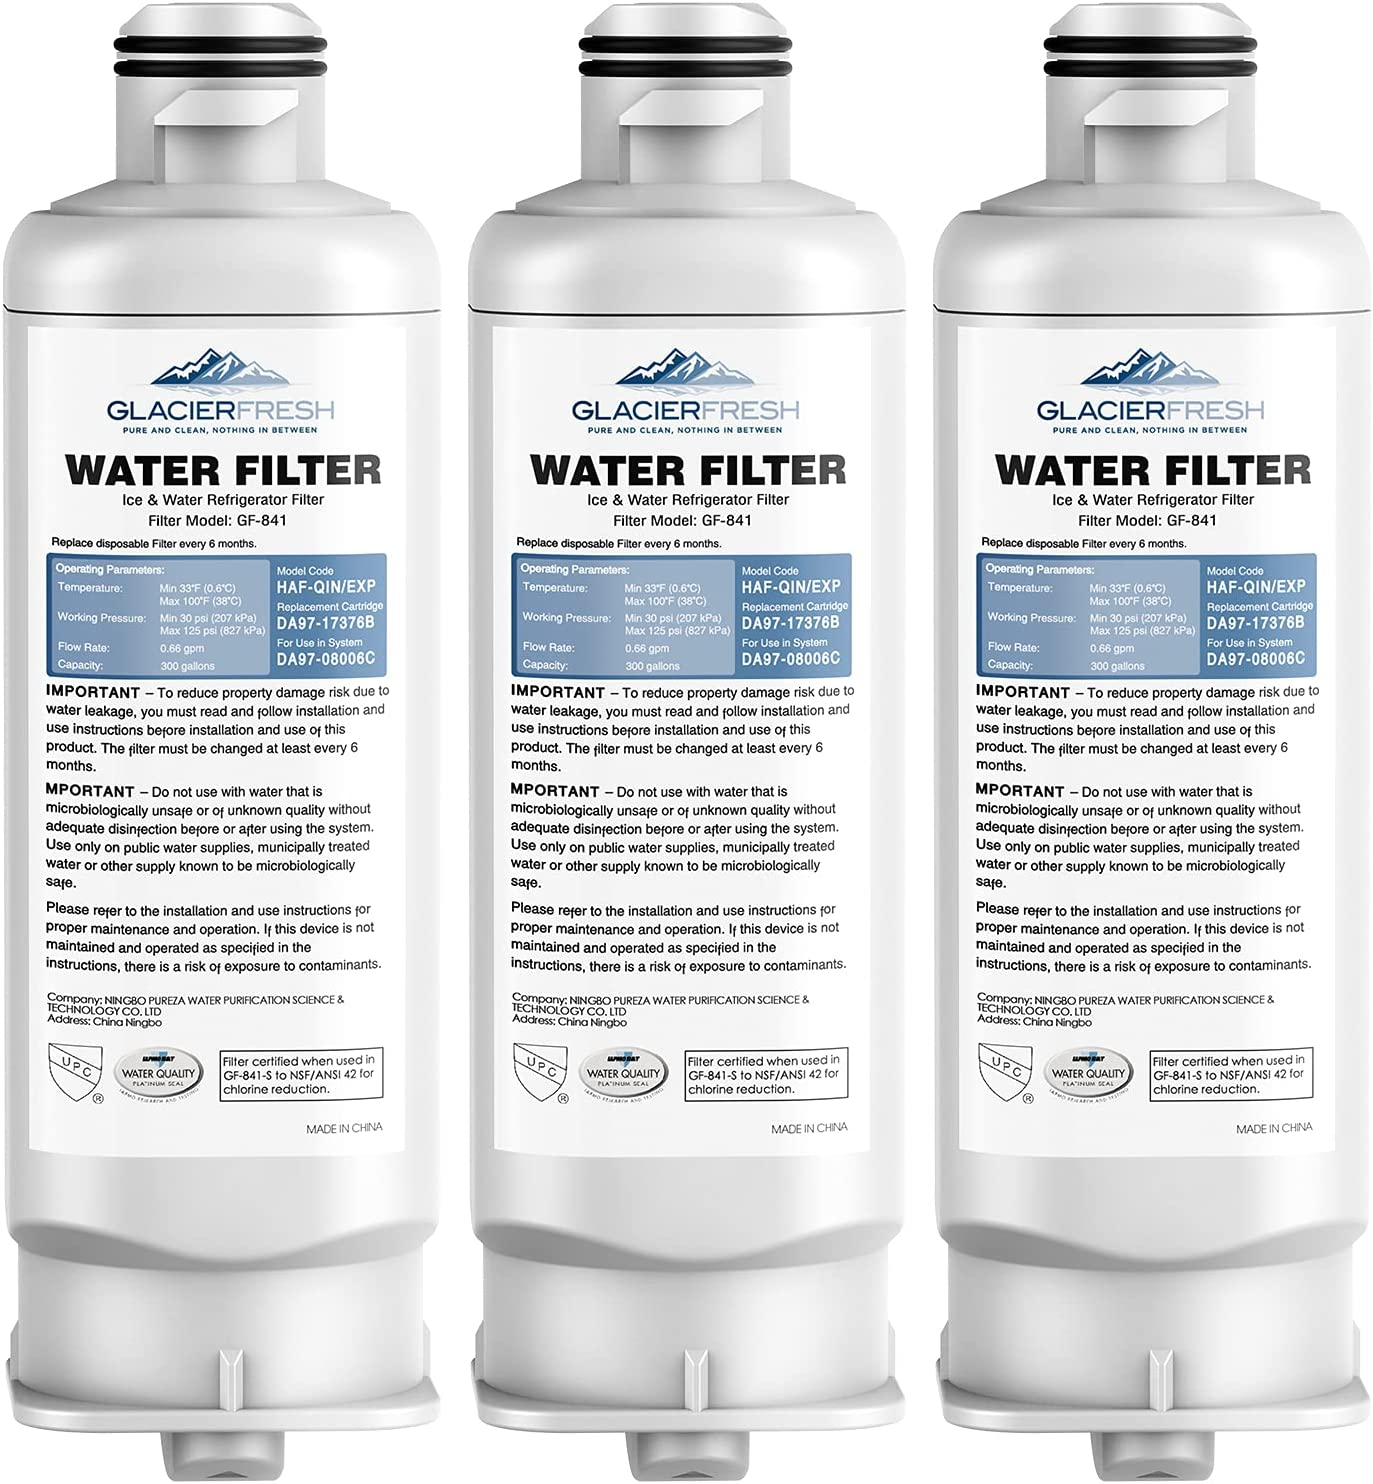 It is very popular GLACIER FRESH DA97-17376B Free Shipping New HAF-QIN Water Replacement for Filter S